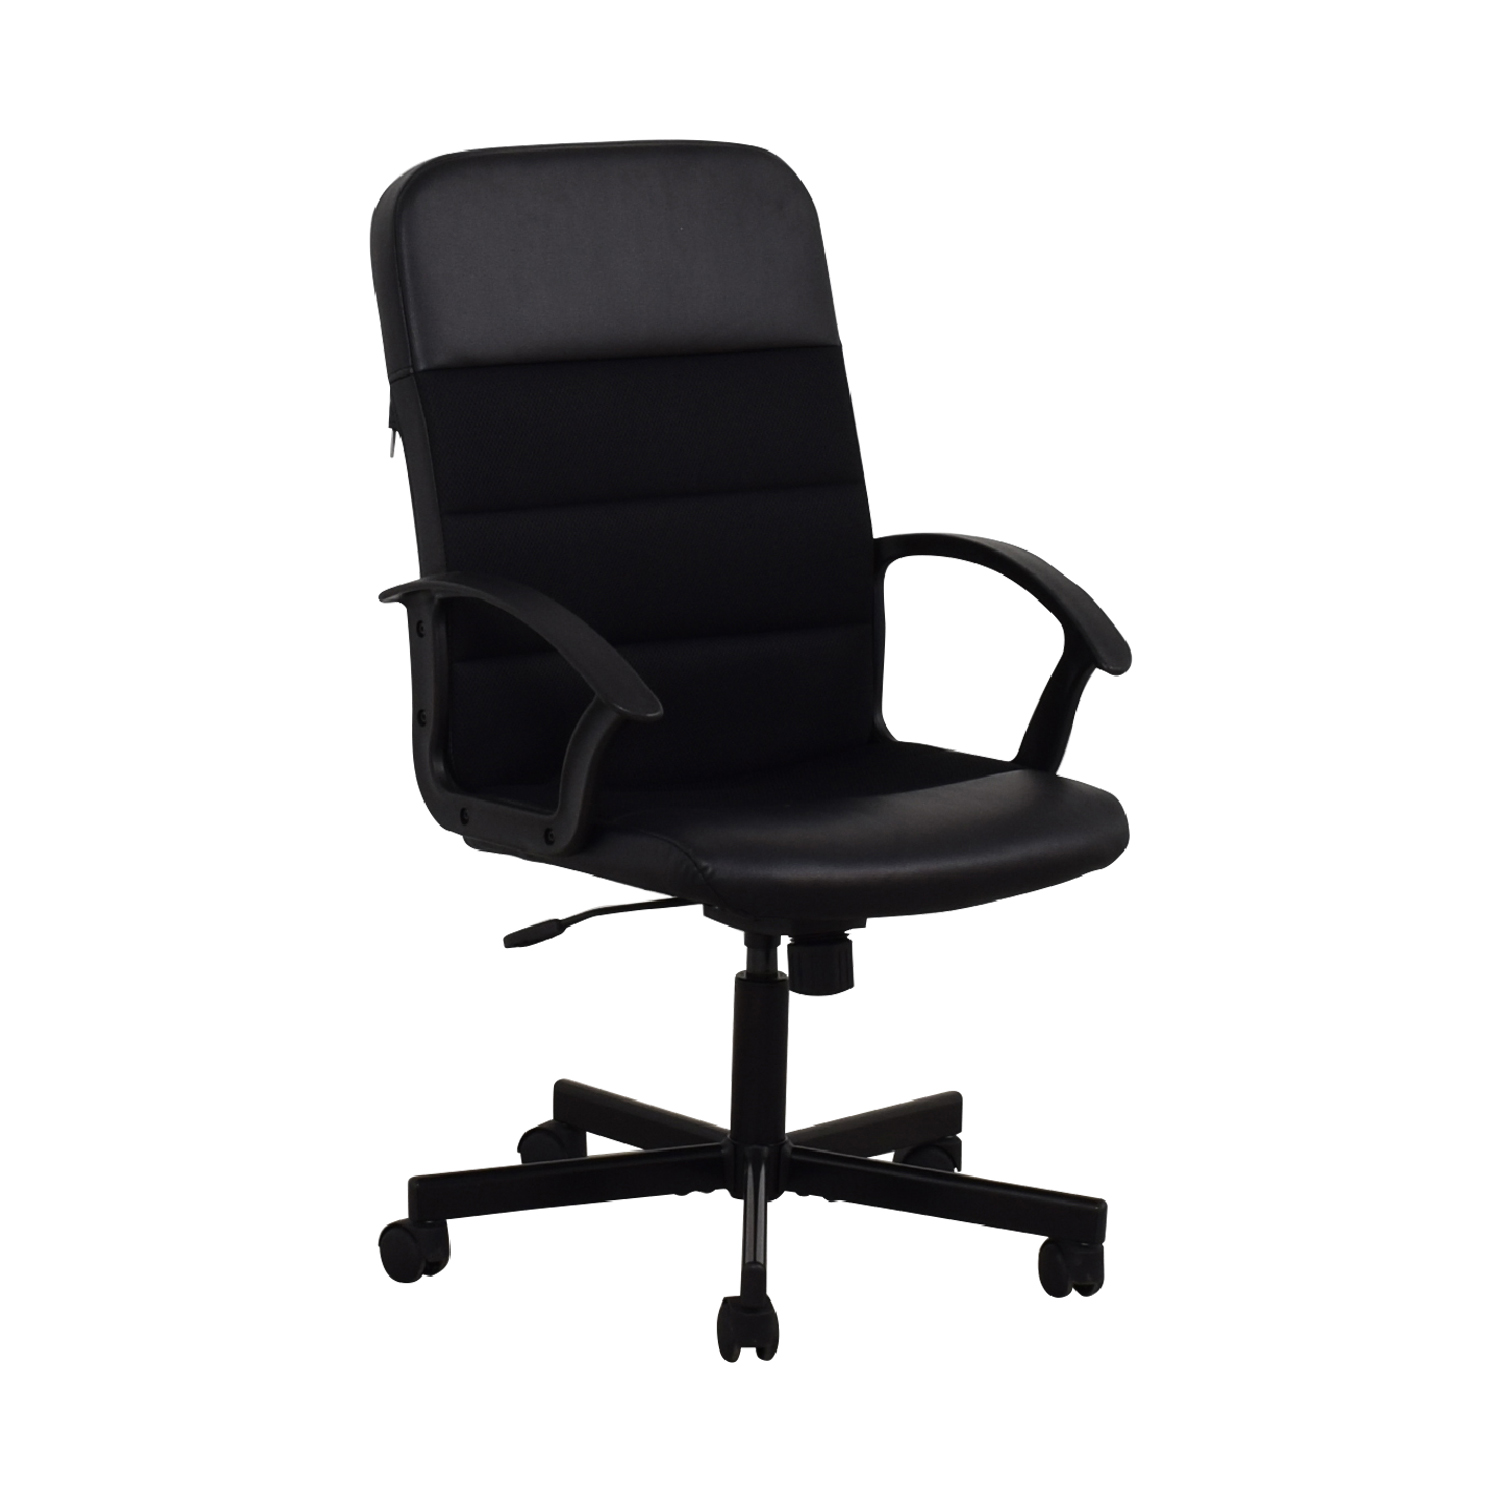 IKEA IKEA Renberget Office Chair Chairs